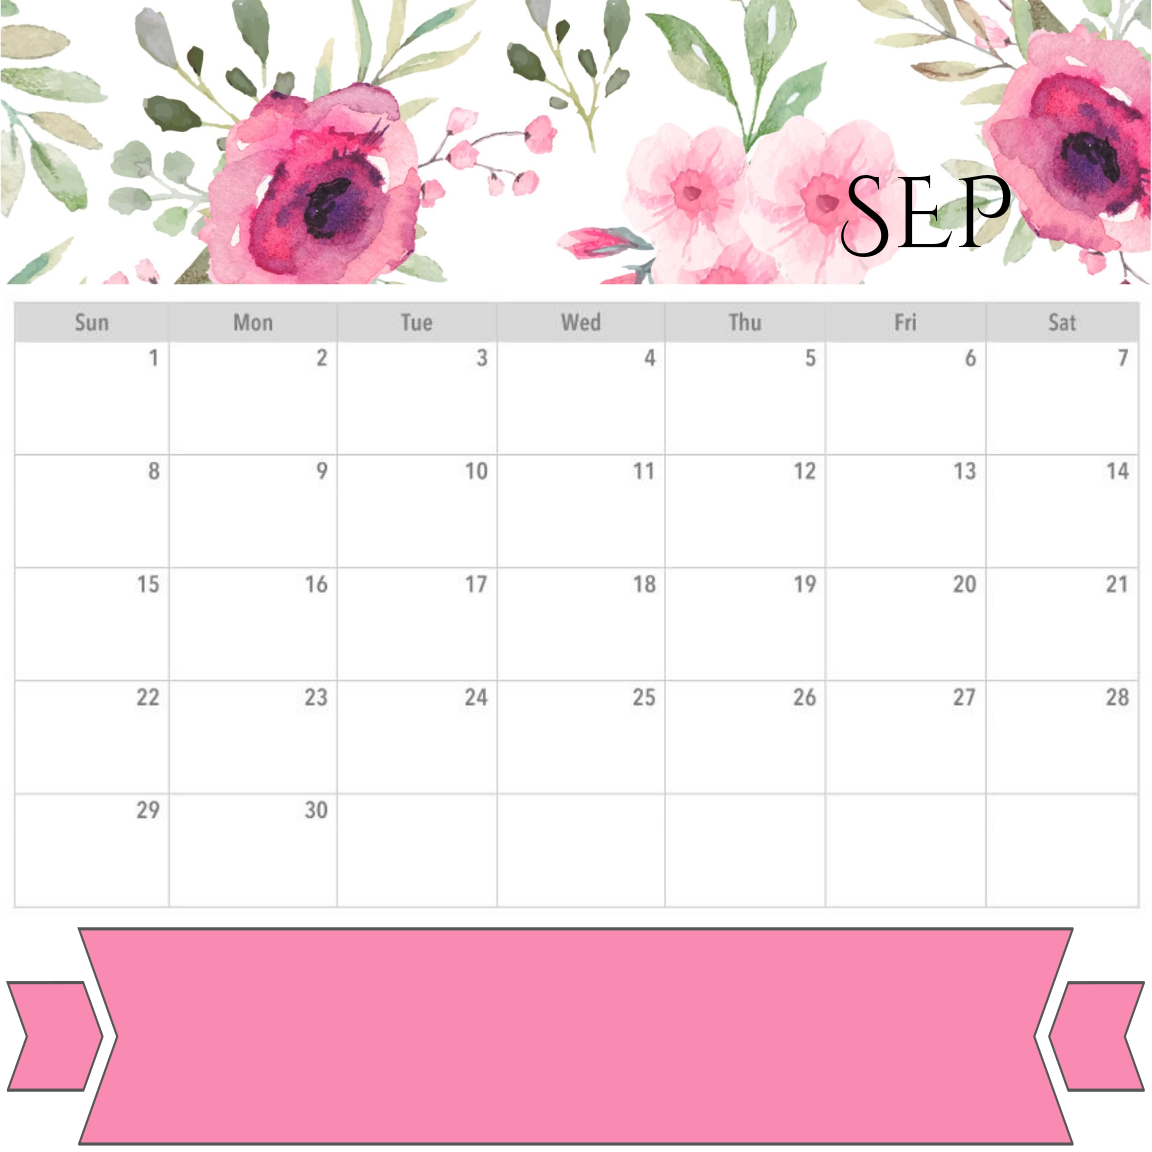 photograph relating to Printable Monthly Calendar September identified as PRINTABLES - PLANNER - SEPTEMBER 2019 CALENDAR Month-to-month